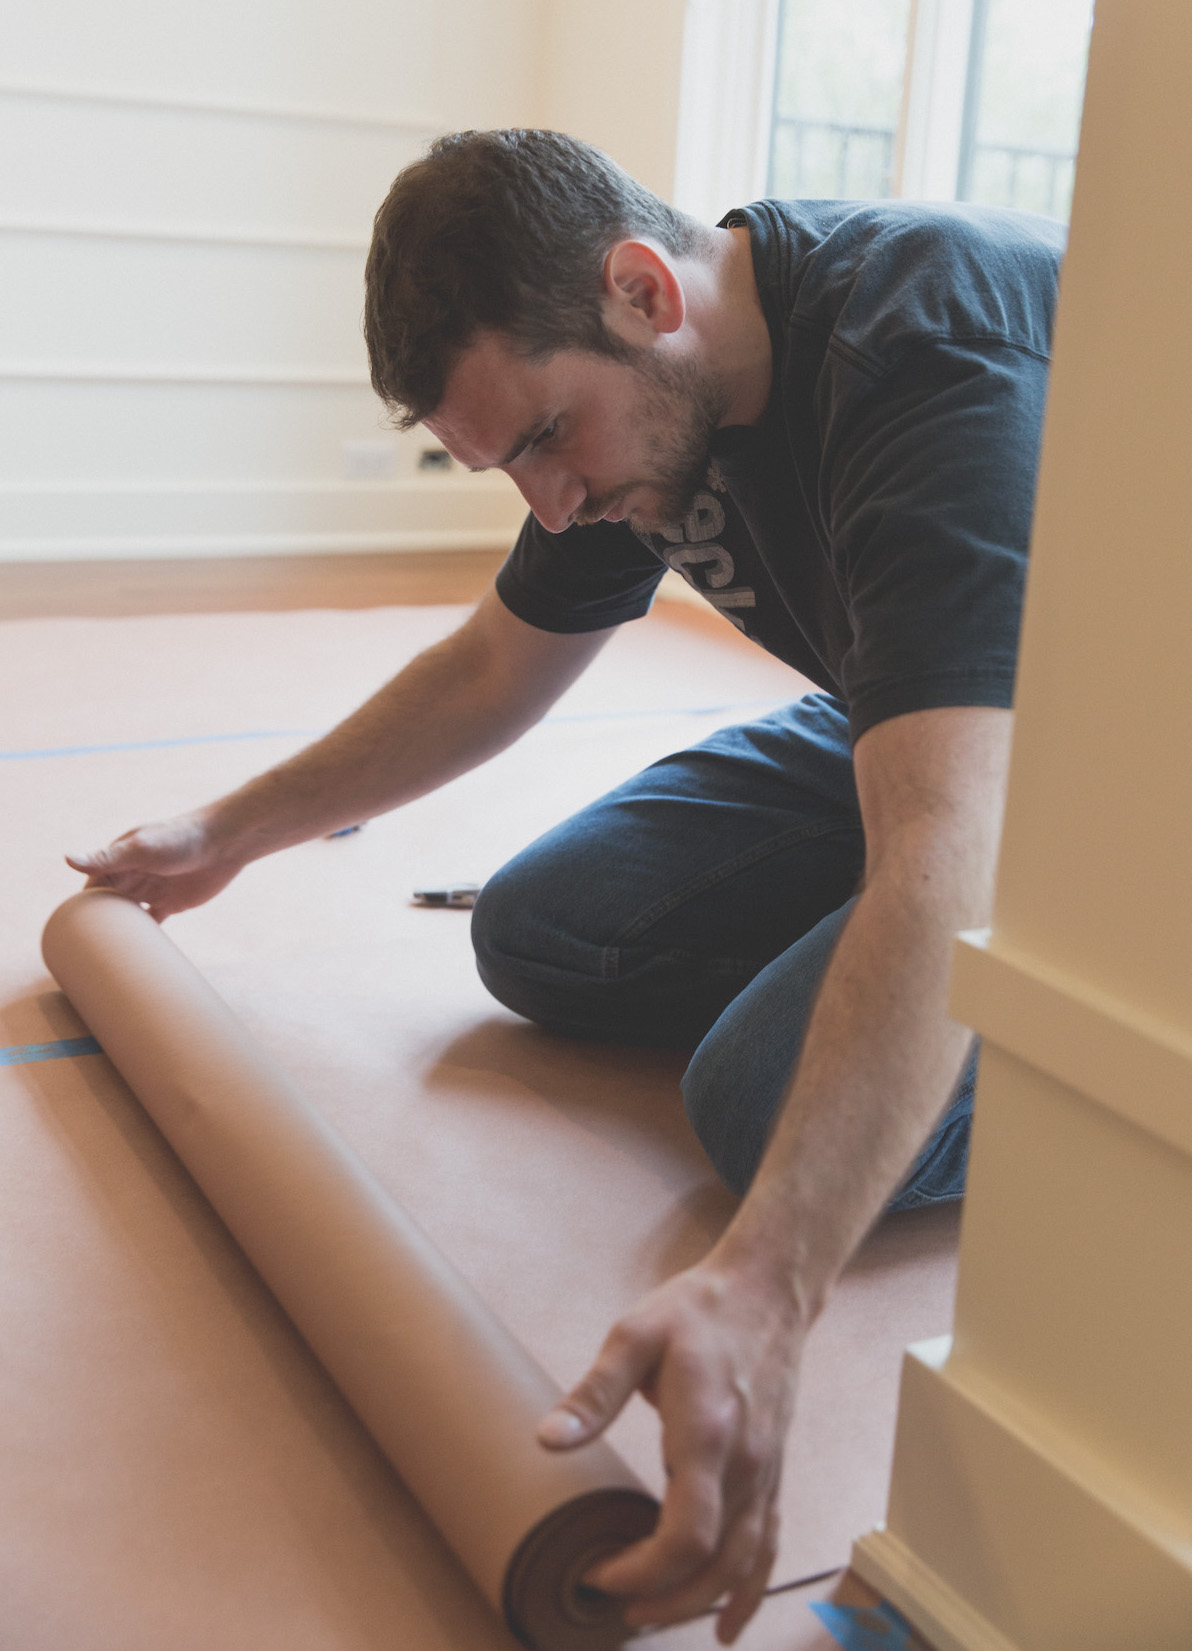 Craftsman preparing for construction work by carefully covering hardwood floors in a home.